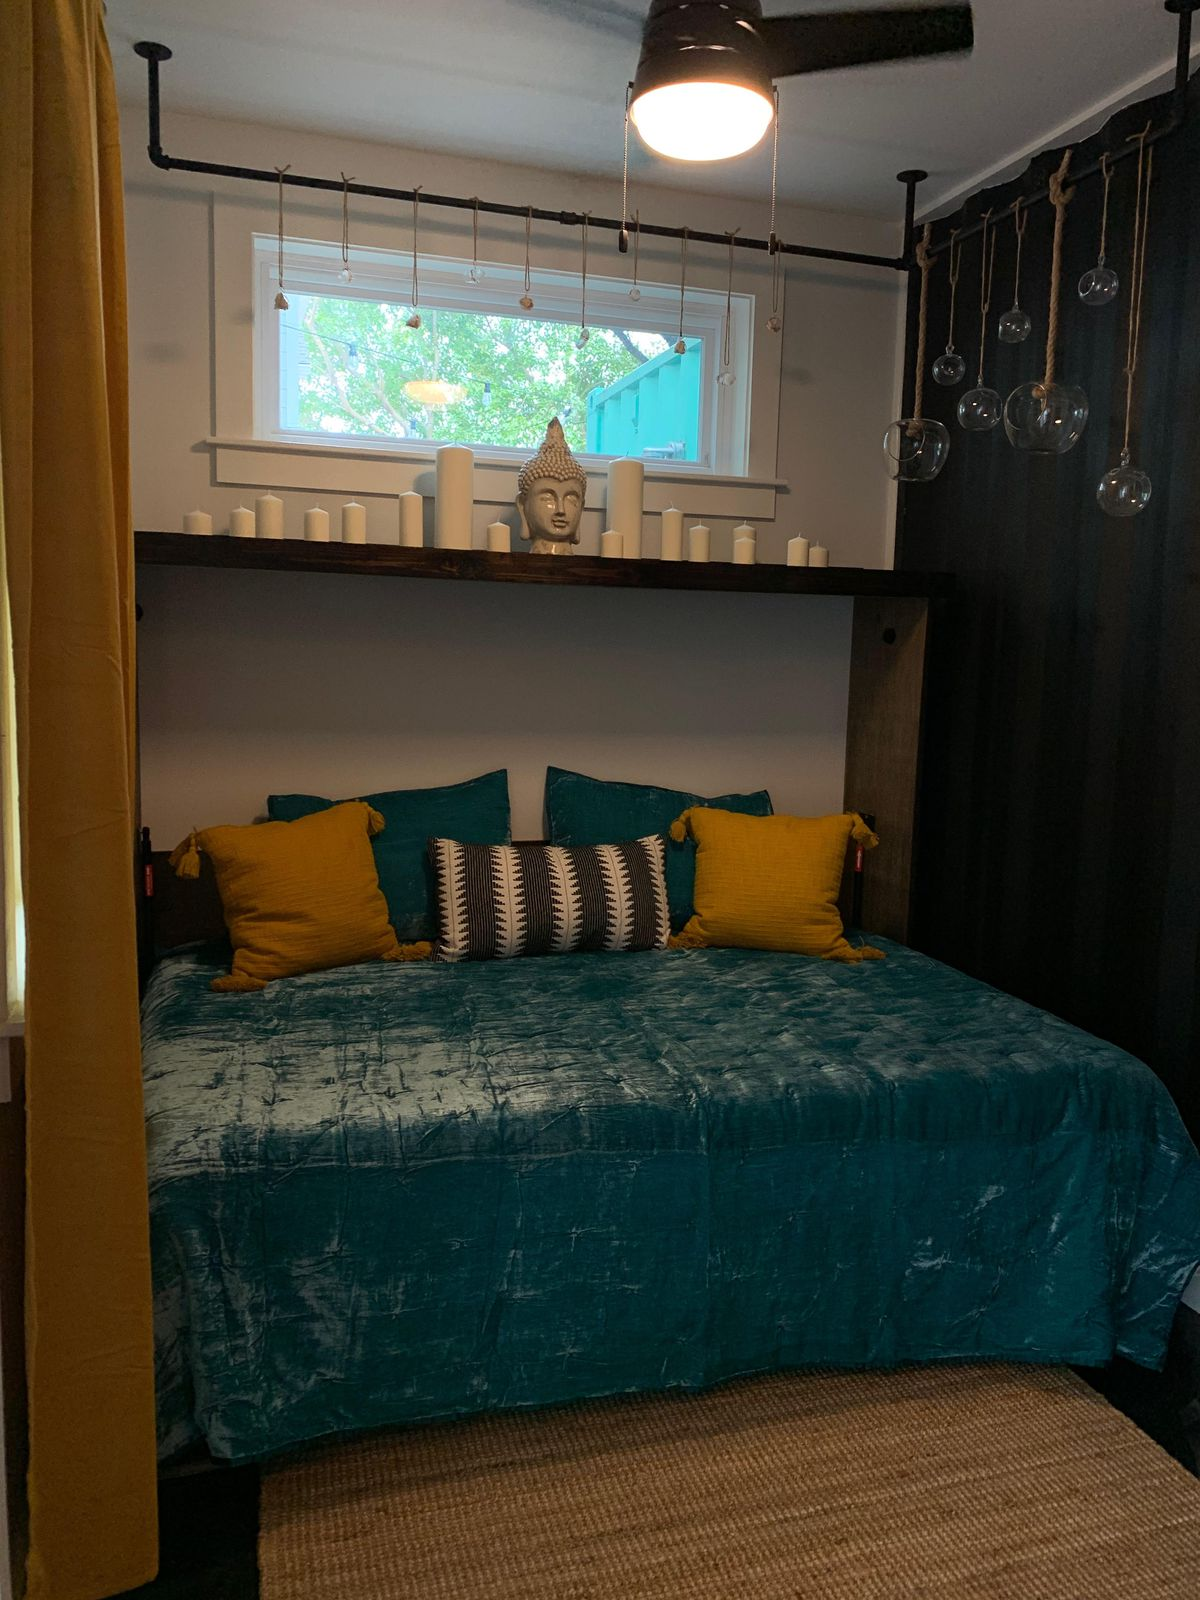 A bedroom with a turquoise bedspread.